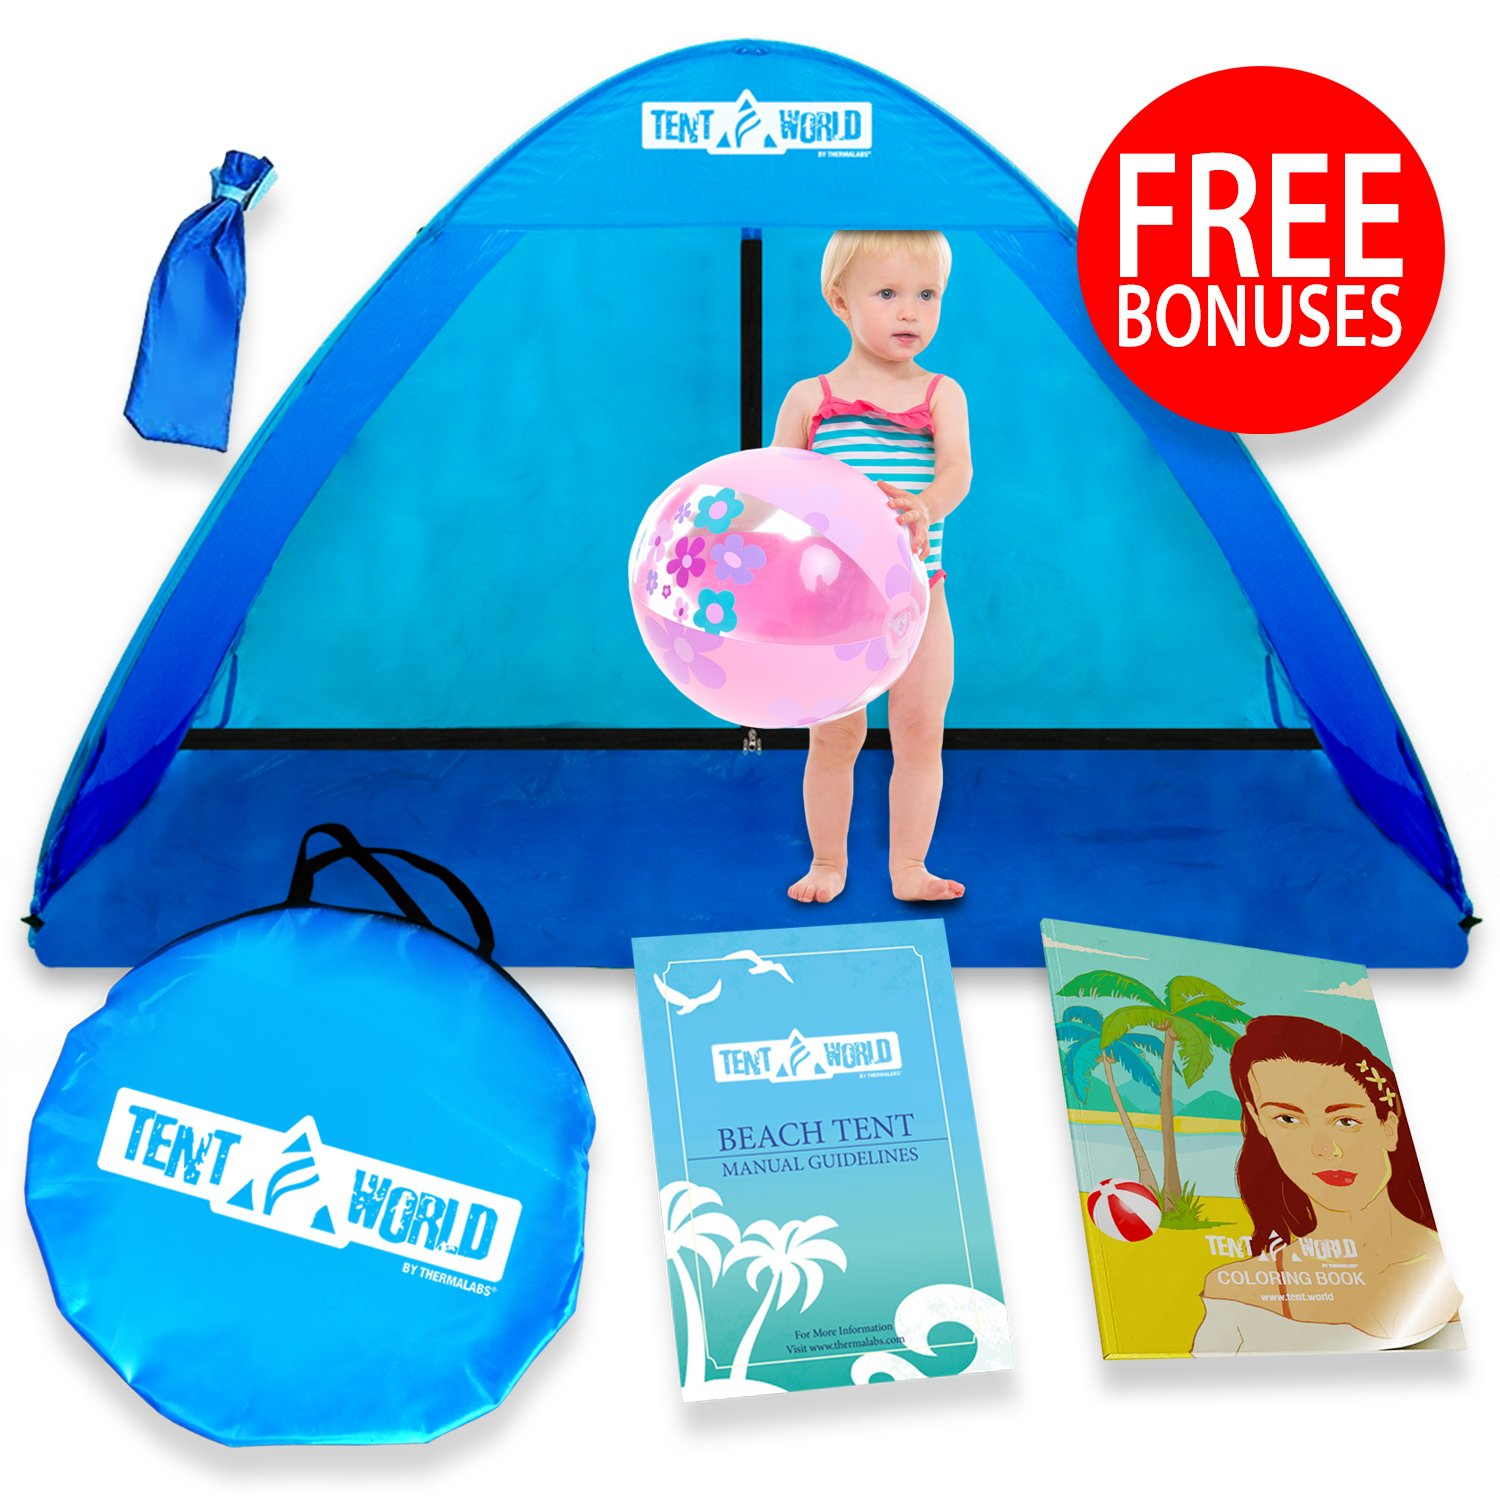 Mercury Anti UV Popup Beach Tent: Get a Shelter in a Breeze! Sun Shade Cabana Shelter with Carry Bag, Accessories and Bonuses sunshade TRML-TNT